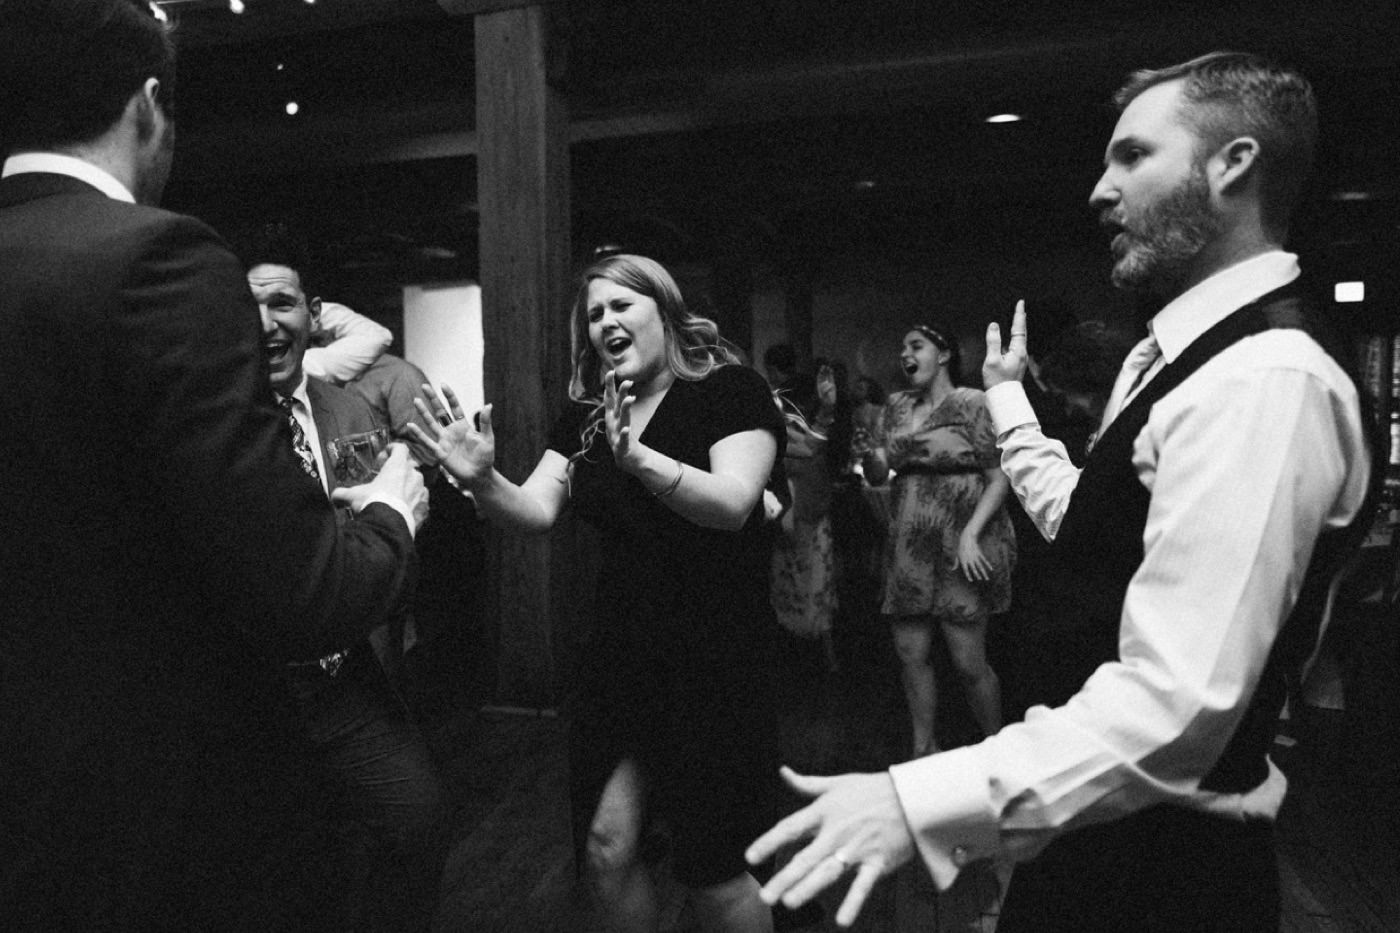 68_Lucy-Daniel-Chicago-Wedding-By-Sarah-Katherine-Davis-Photography0972bw.jpg